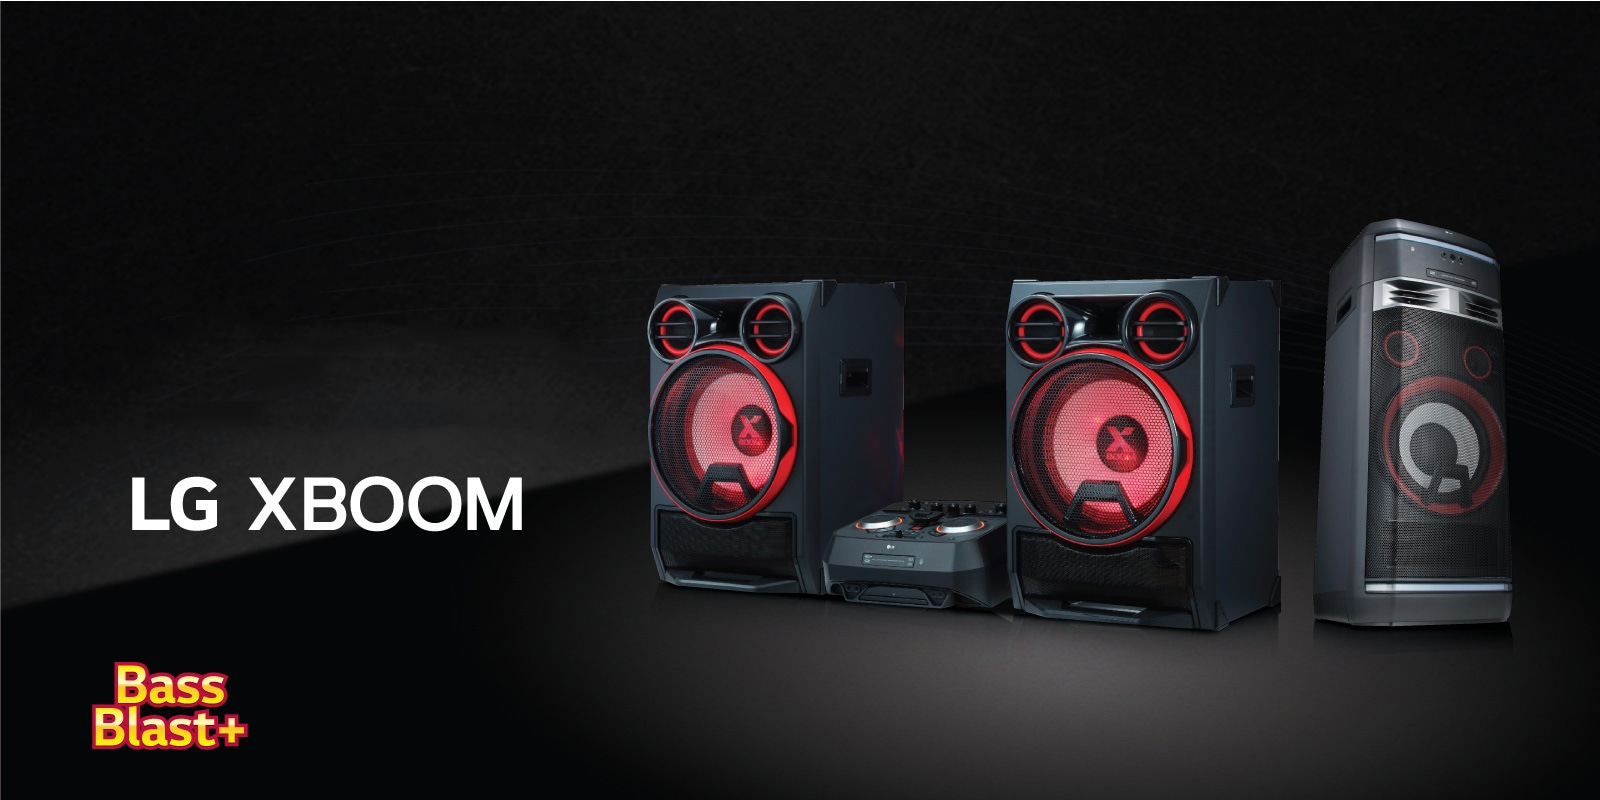 Lg Home Audio Browse Hi Fi Systems Speakers Philippines Amplifier Wiring Kit Buying Guide Learning Center Sonic Electronix Xboom Hero Banner Desktop